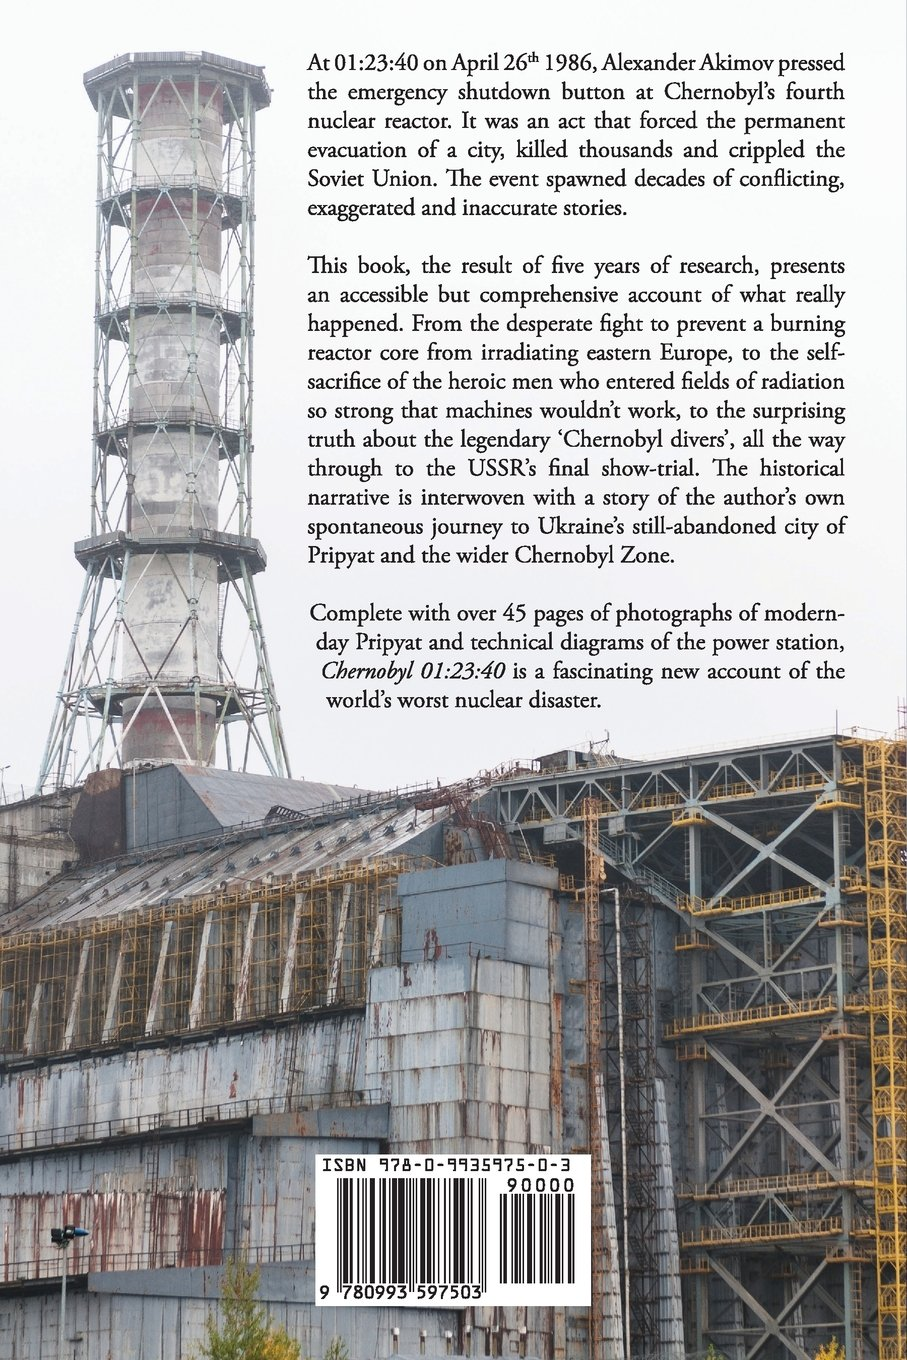 Chernobyl 012340 The Incredible True Story Of Worlds Worst Nuclear Power Plant With Diagram Disaster Andrew Leatherbarrow 9780993597503 Books